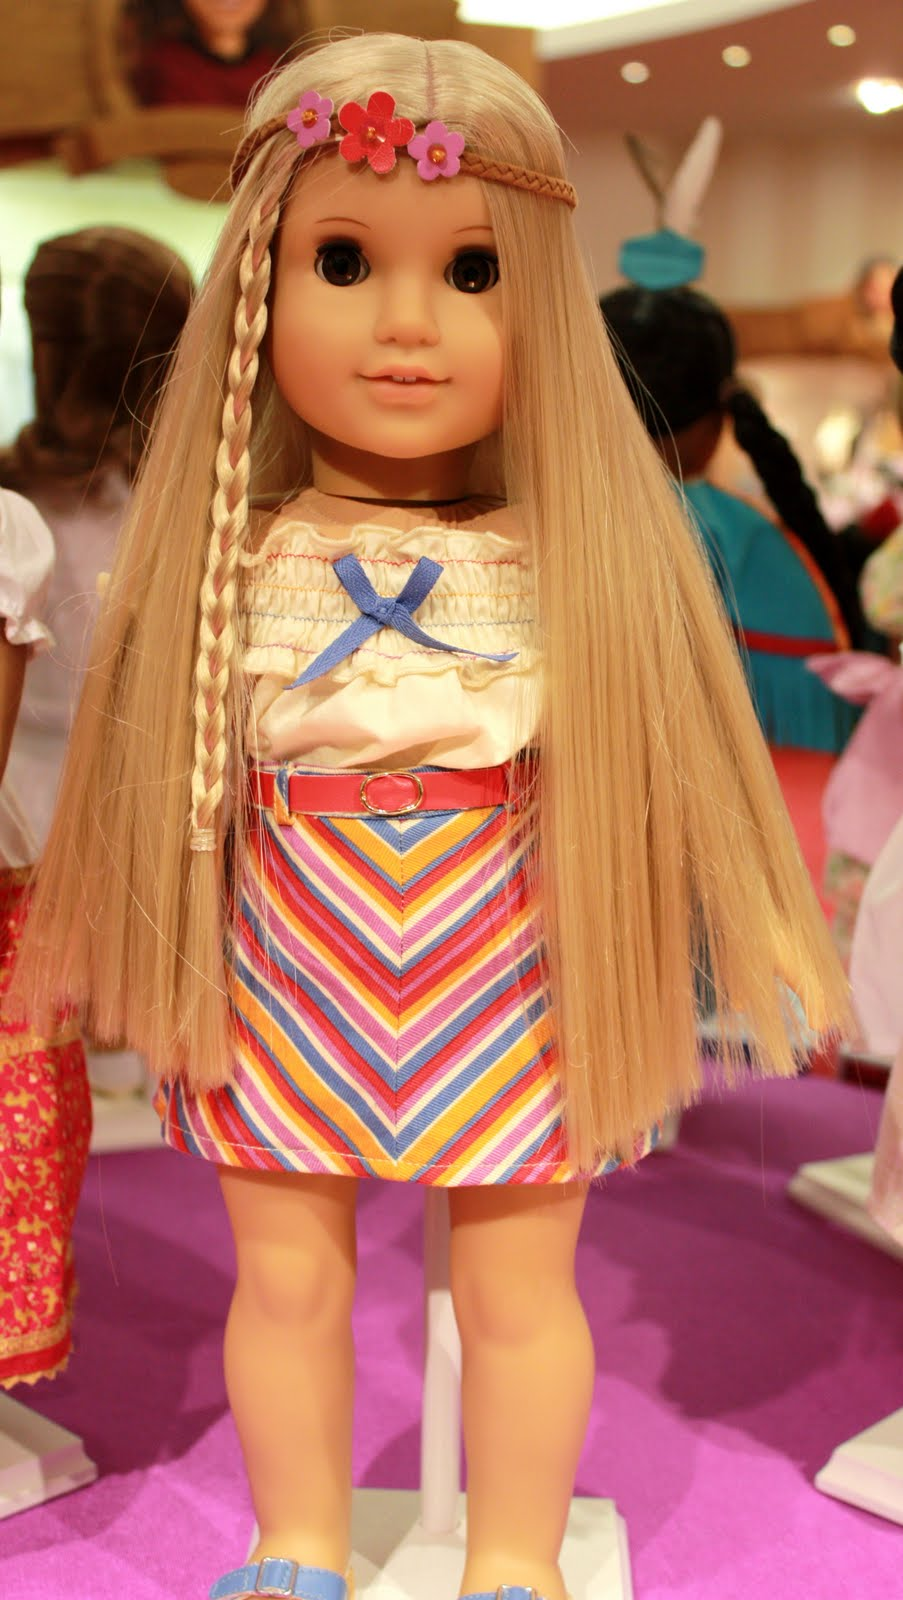 The Worst Thing About Being A Doll Hairstylist The Grandmas - American girl doll hairstyle ideas